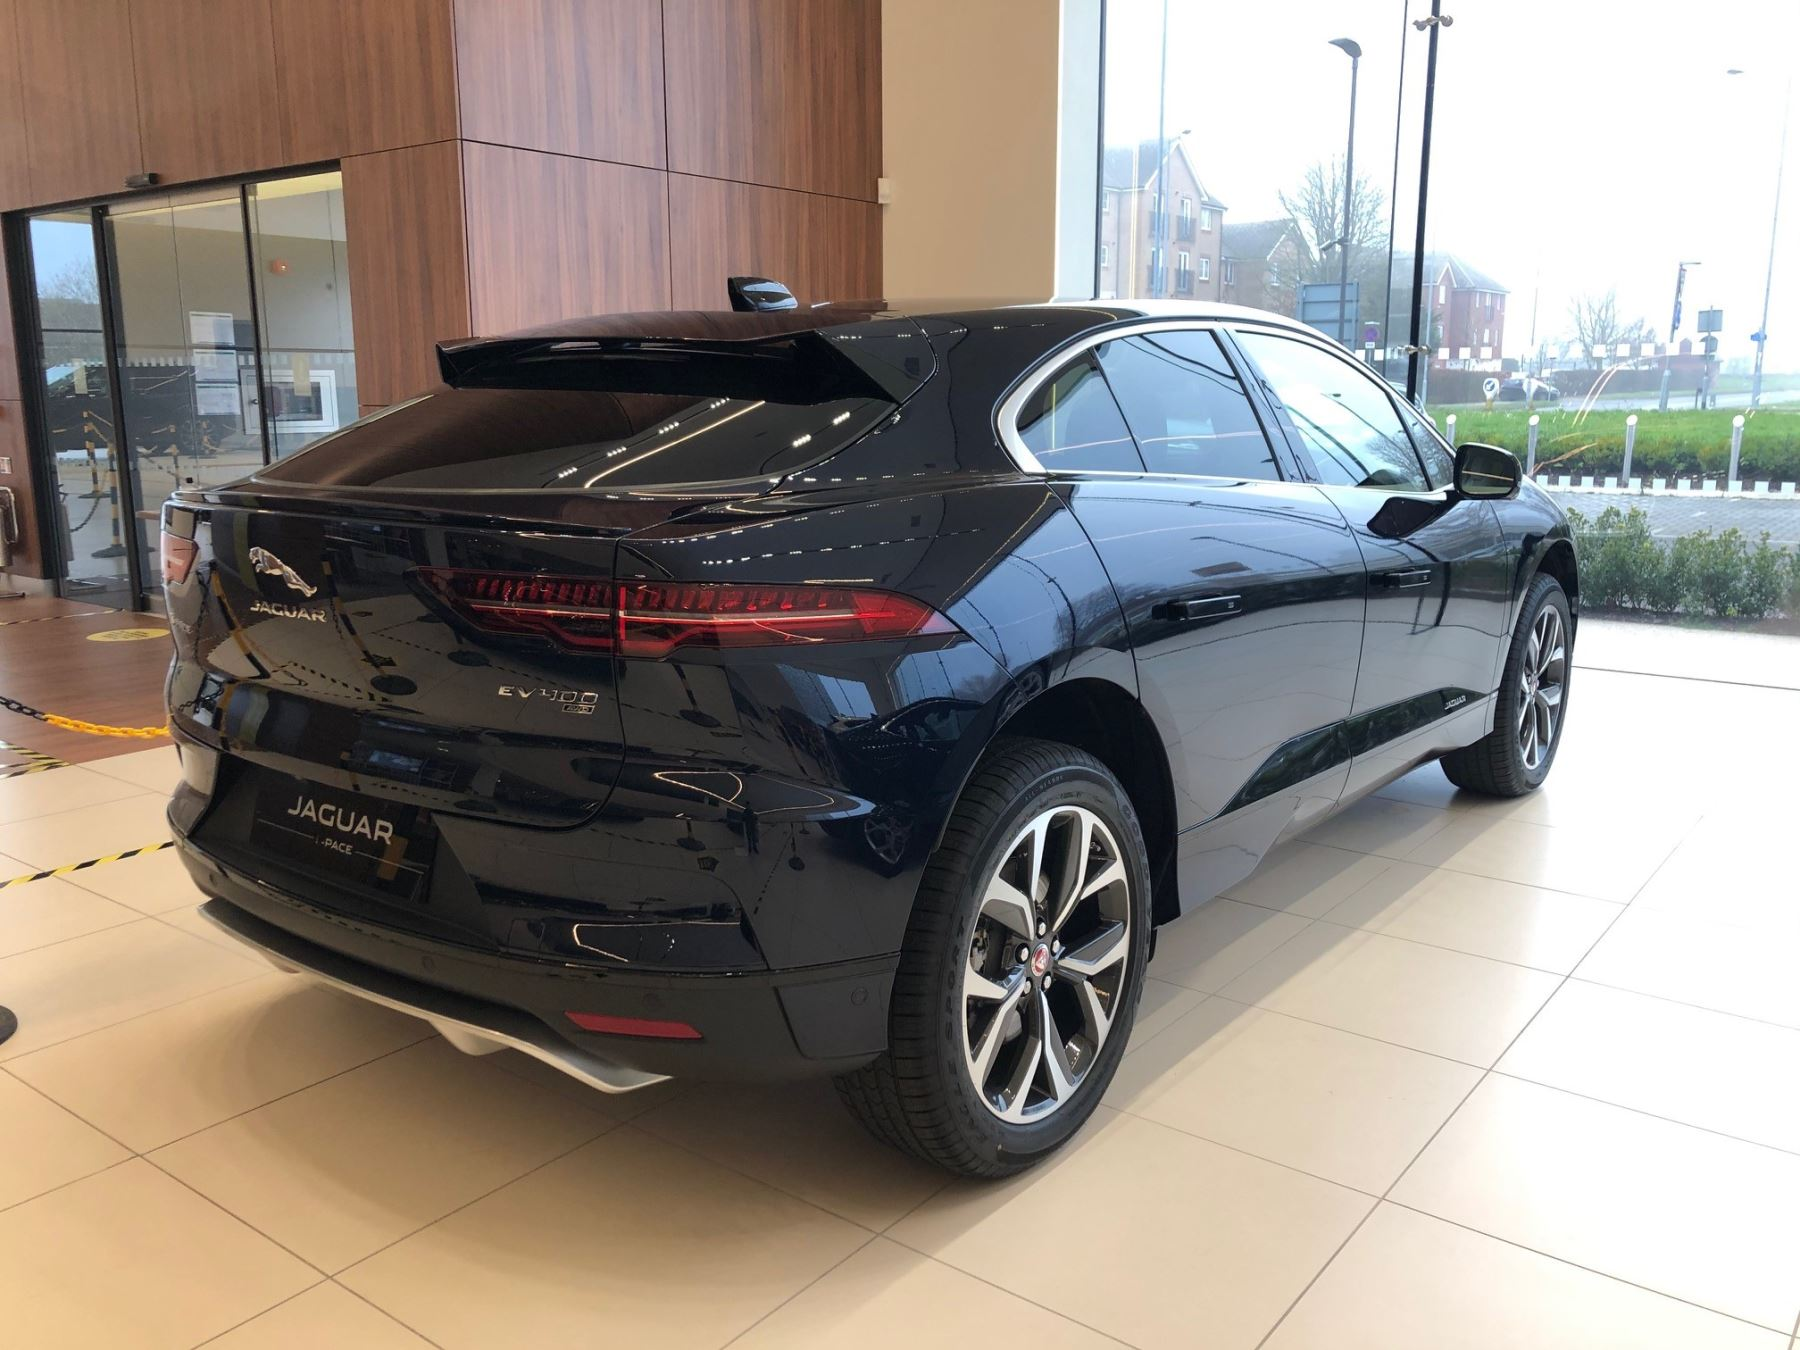 Jaguar I-PACE 2021 Model Year EV400 HSE AWD image 3